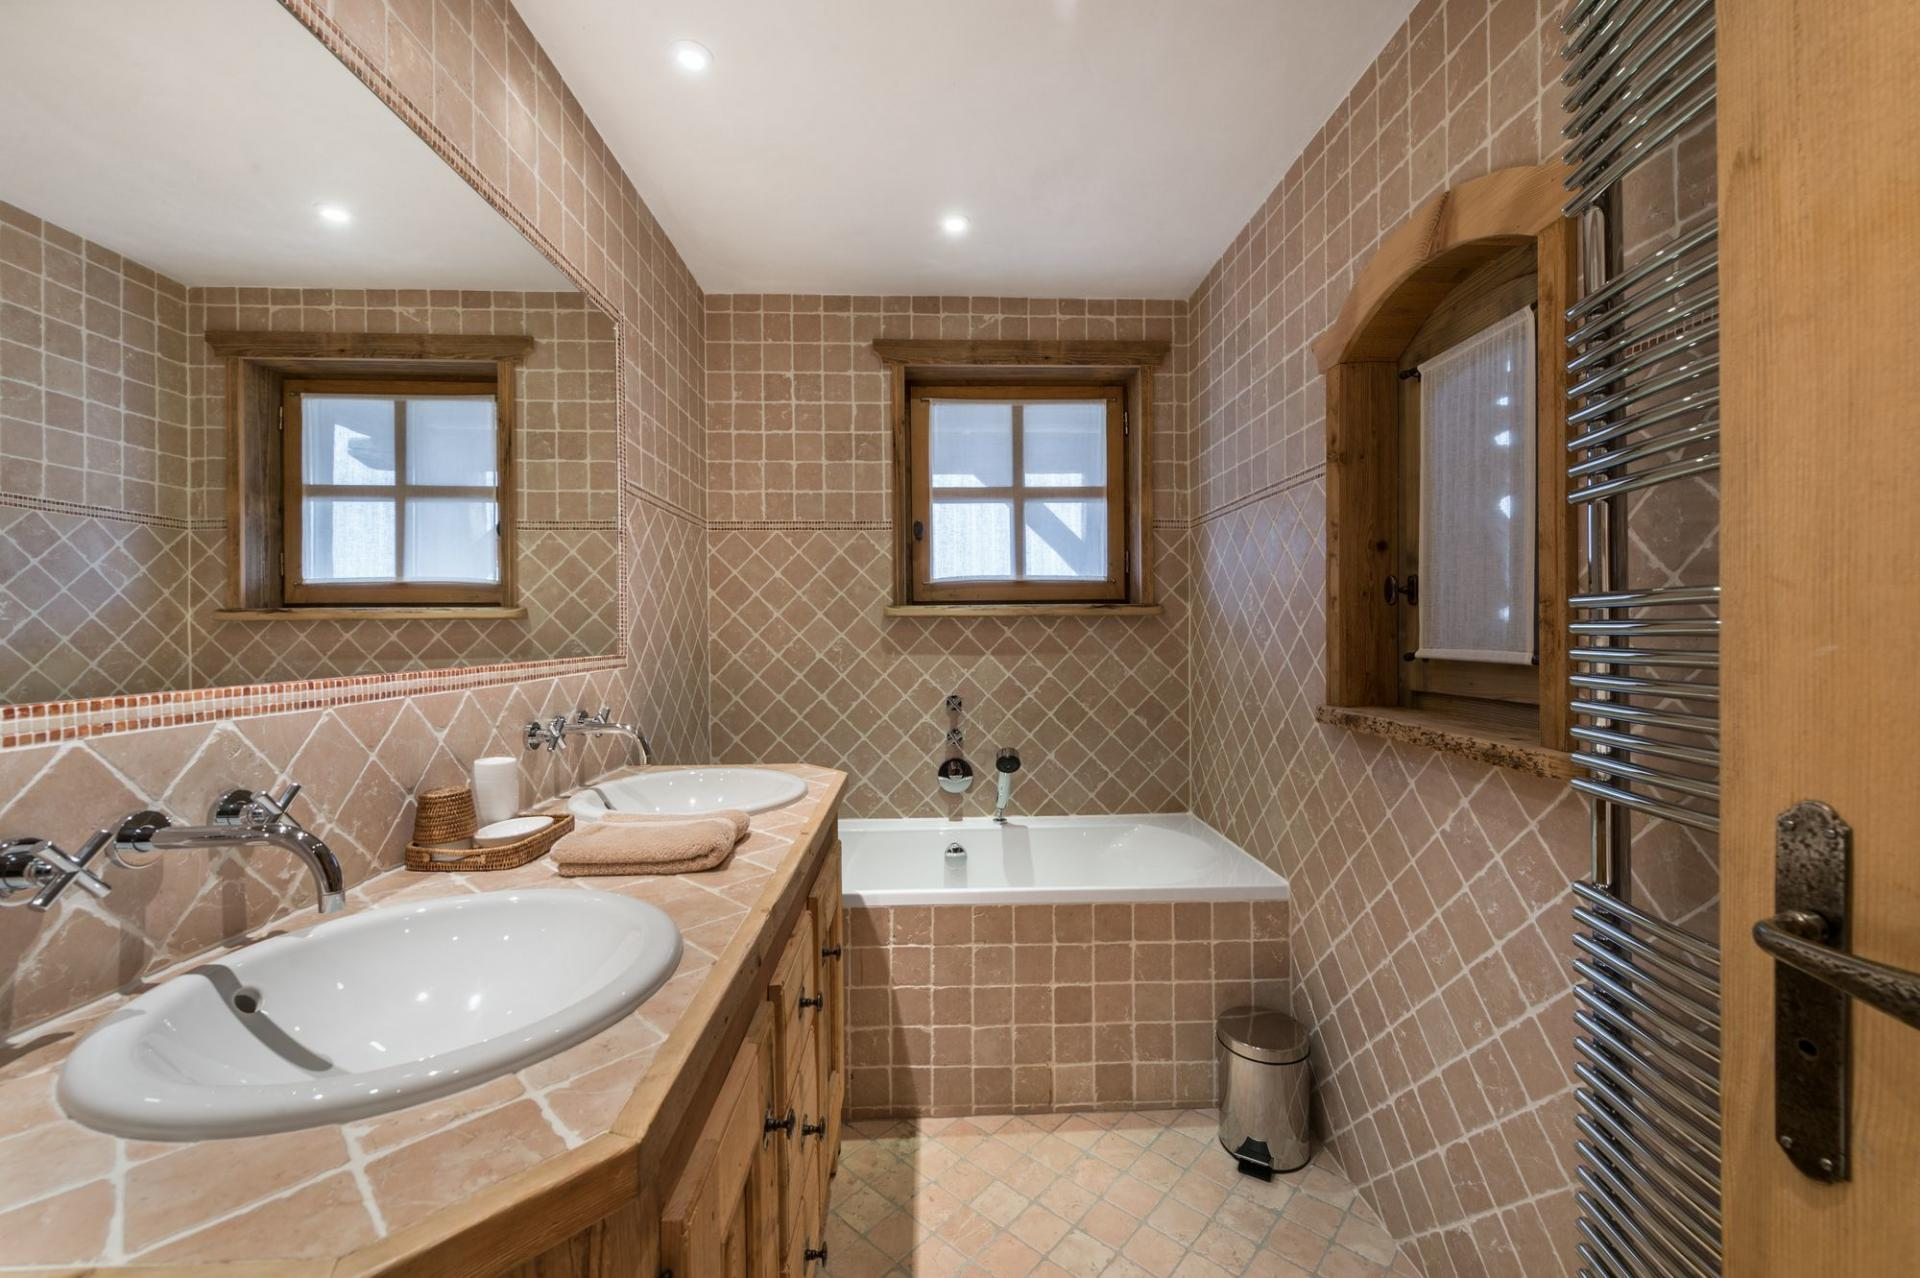 ANOTHER BATHROOM IN CHALET BELLECOTE IN THE FRENCH ALPS